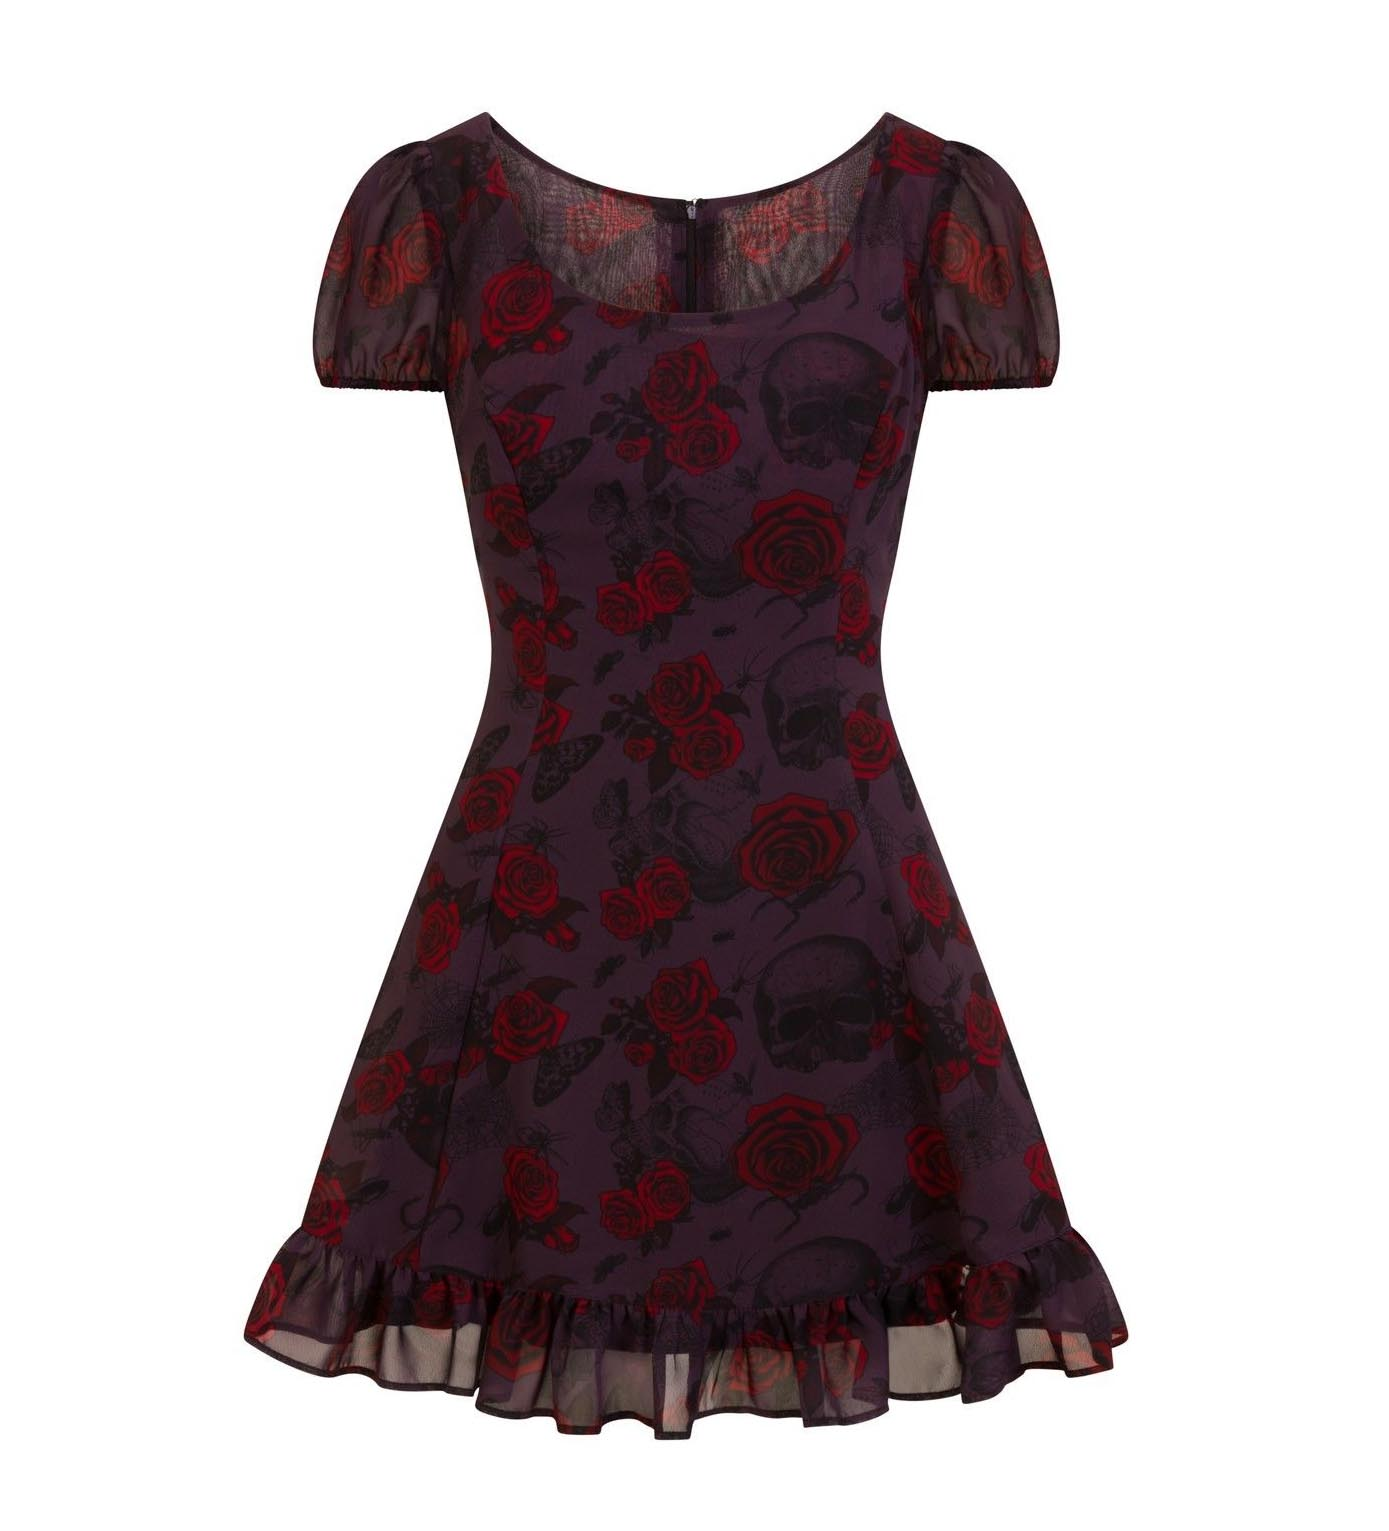 Hell-Bunny-Goth-Floaty-Mini-Dress-BUGS-amp-ROSES-Skulls-Butterfly-Purple-All-Sizes thumbnail 35